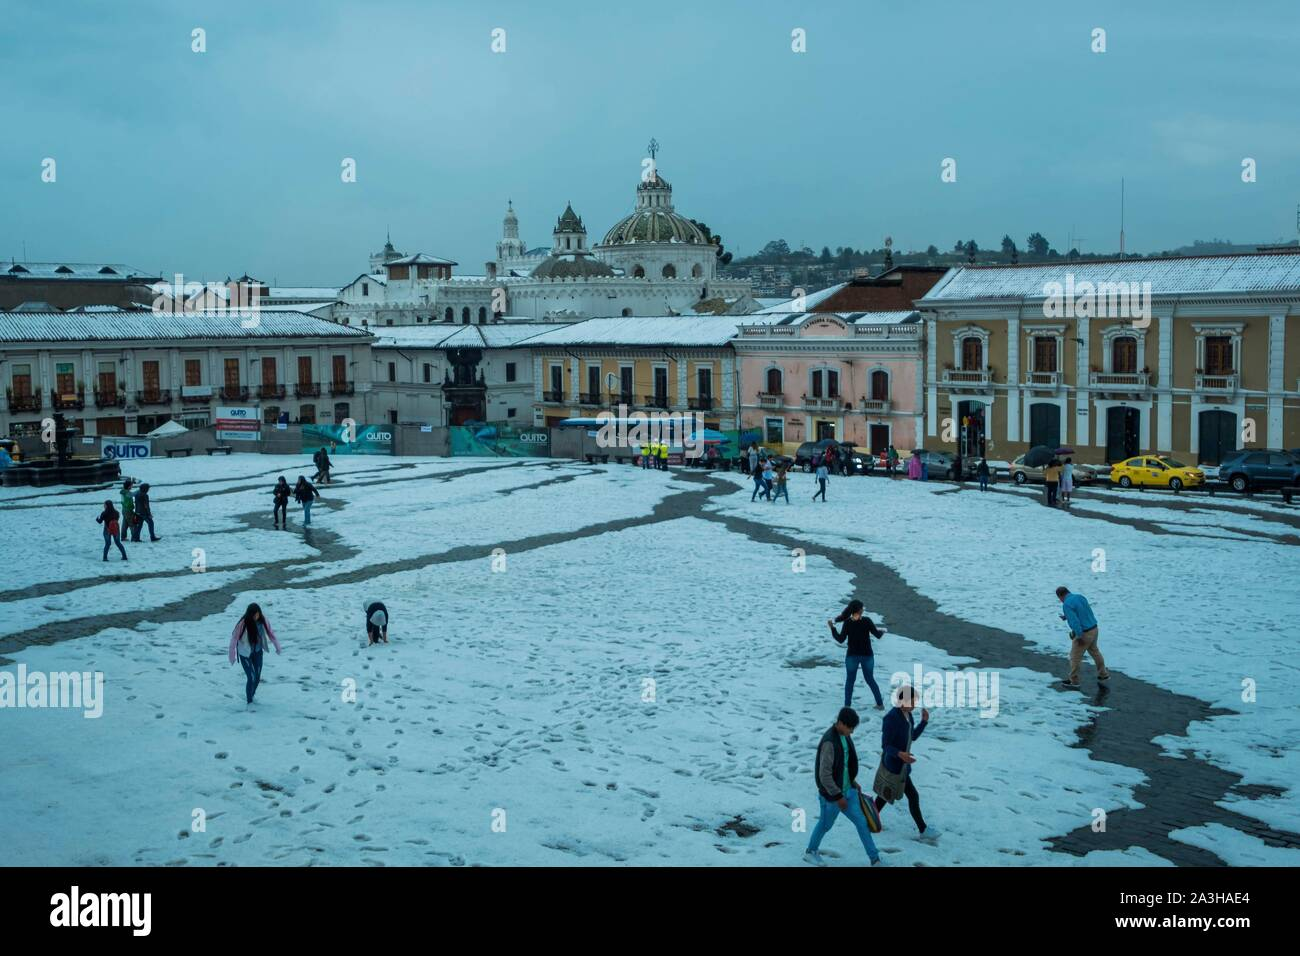 Ecuador, Quito, registered World Heritage by UNESCO, San Francisco place under snow Stock Photo